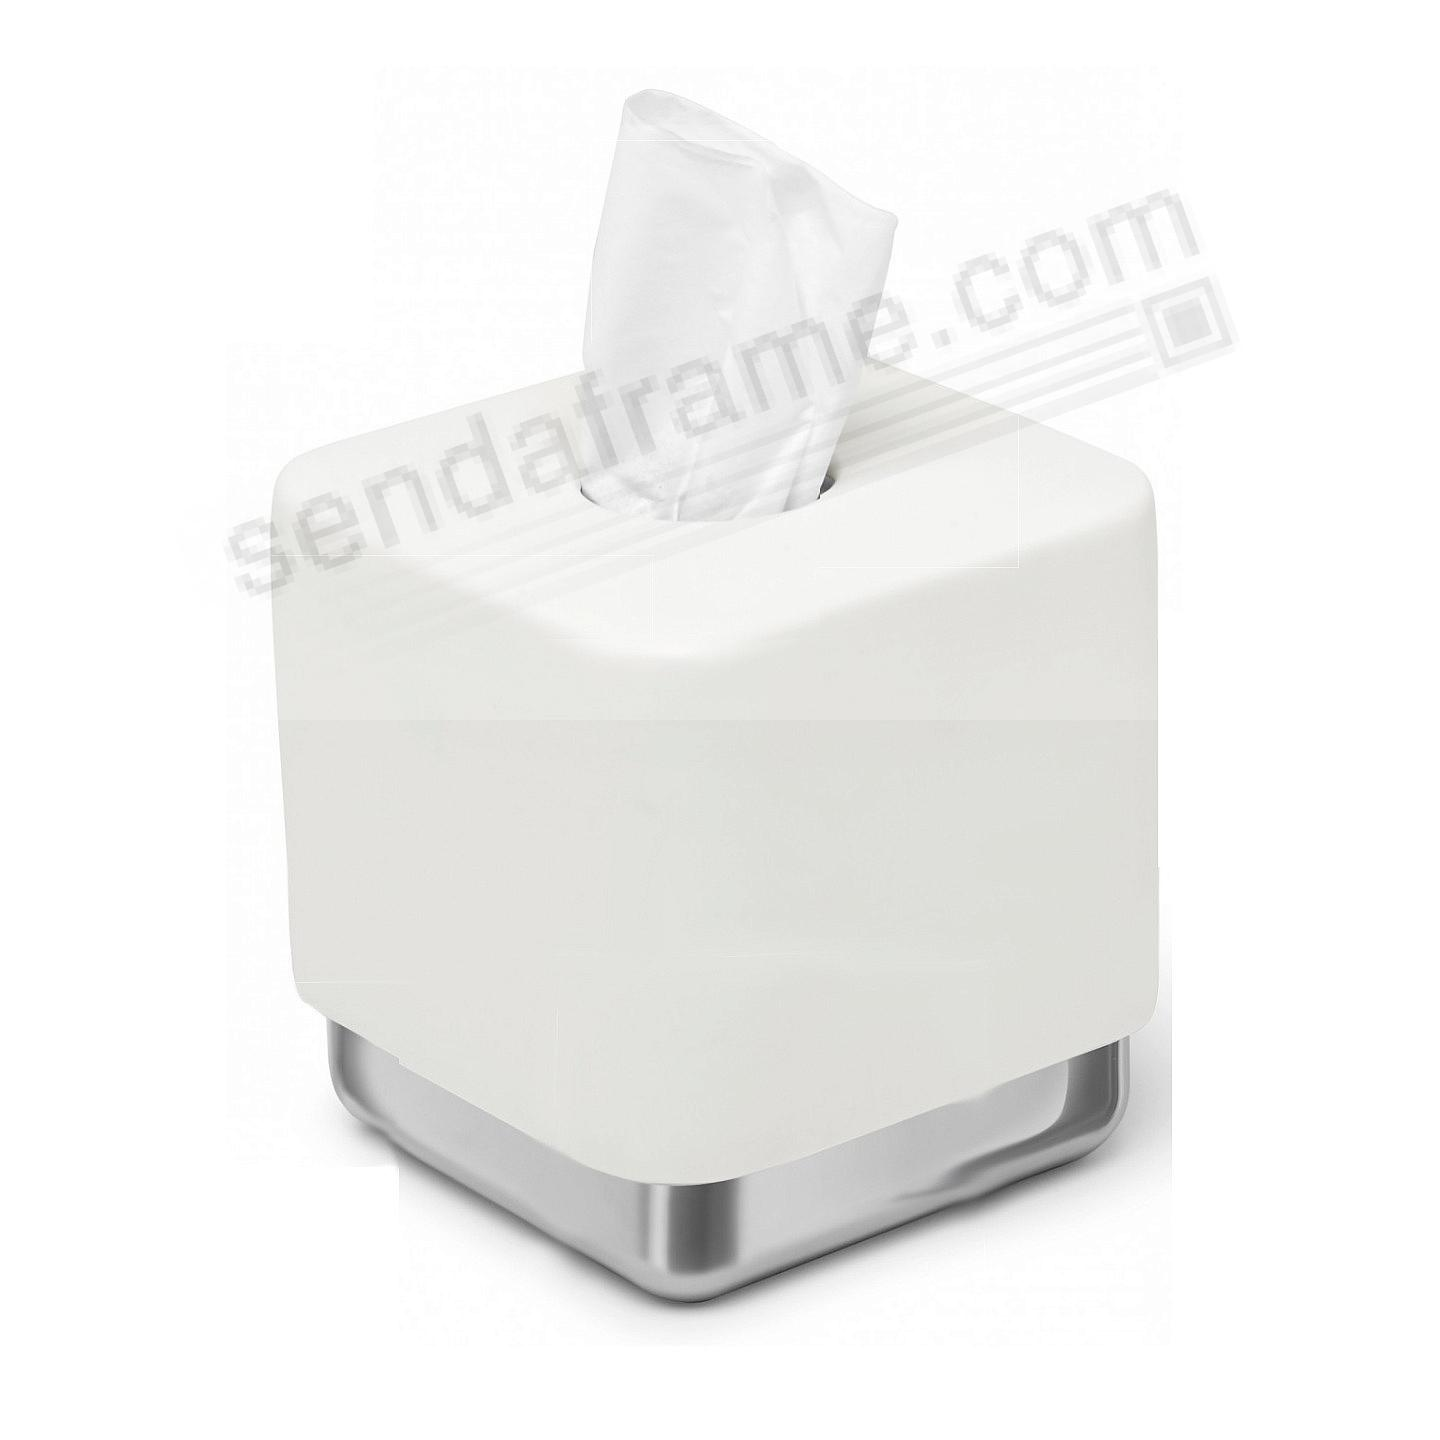 Junip Resin Amenity TISSUE BOX COVER White/Chrome by Umbra®